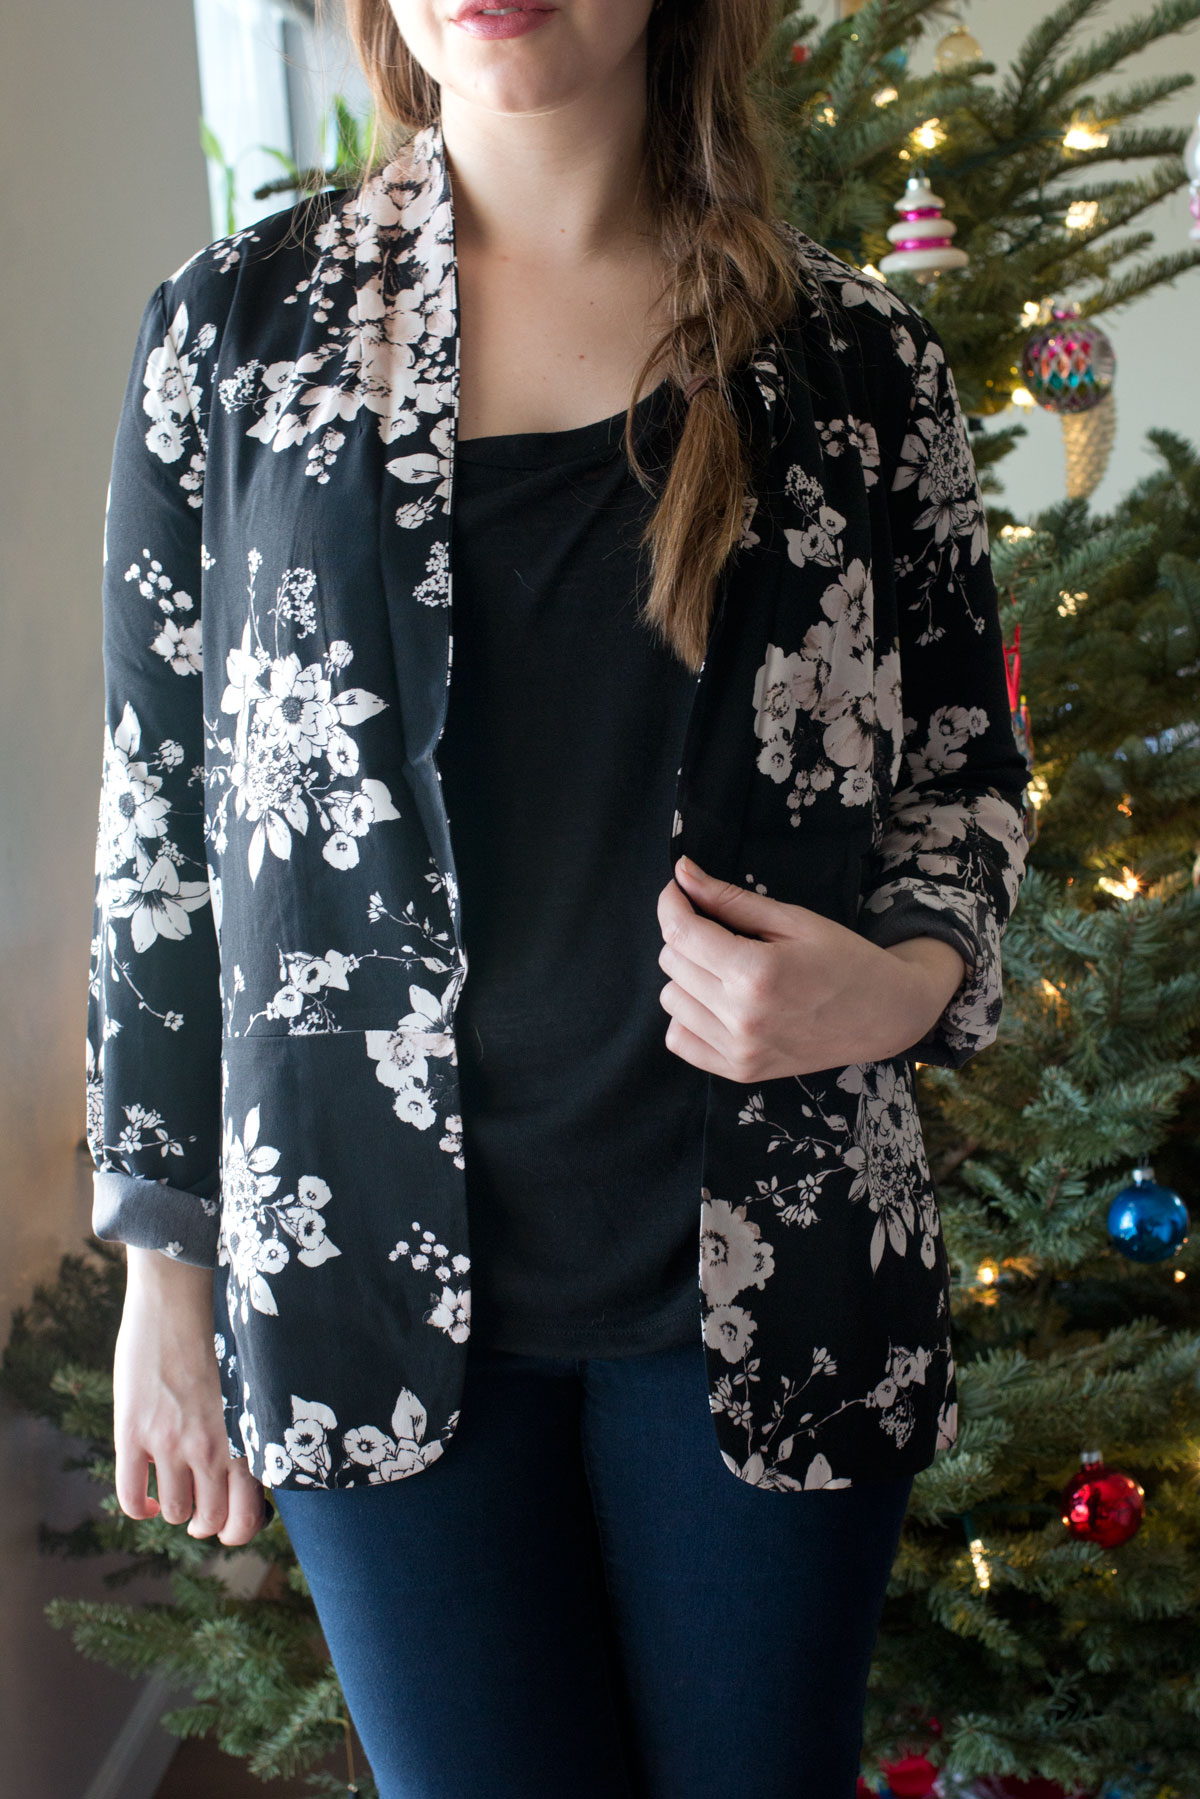 Nordstrom Half Yearly Sale 2015: ASTR Floral Print Blazer // hellorigby seattle fashion & beauty blog